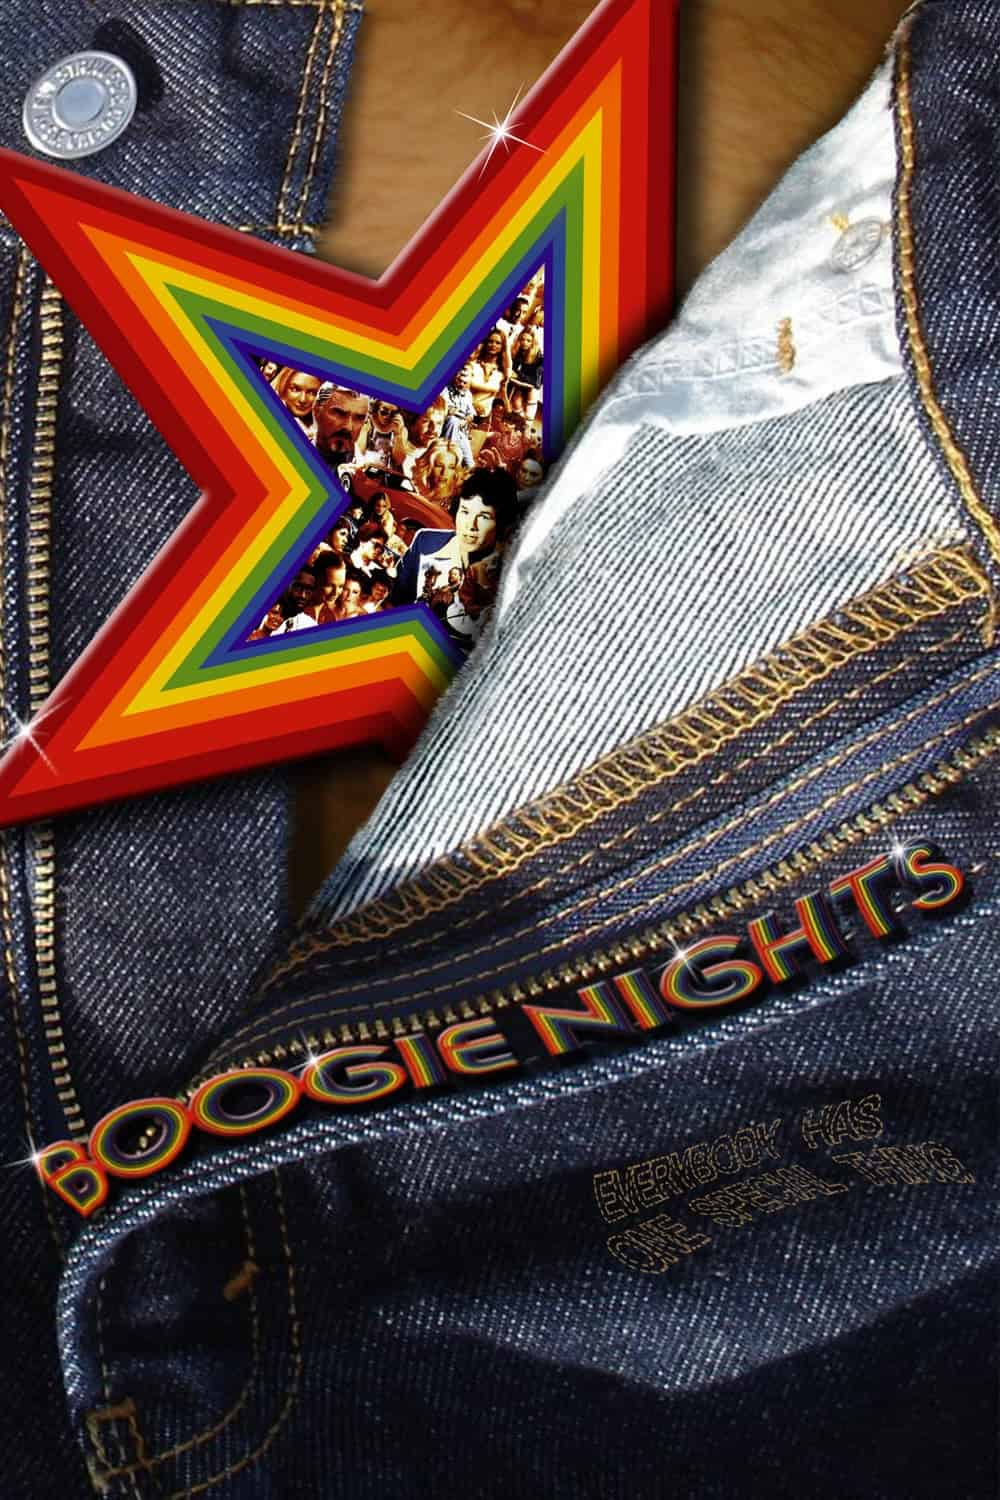 Boogie Nights, 1997